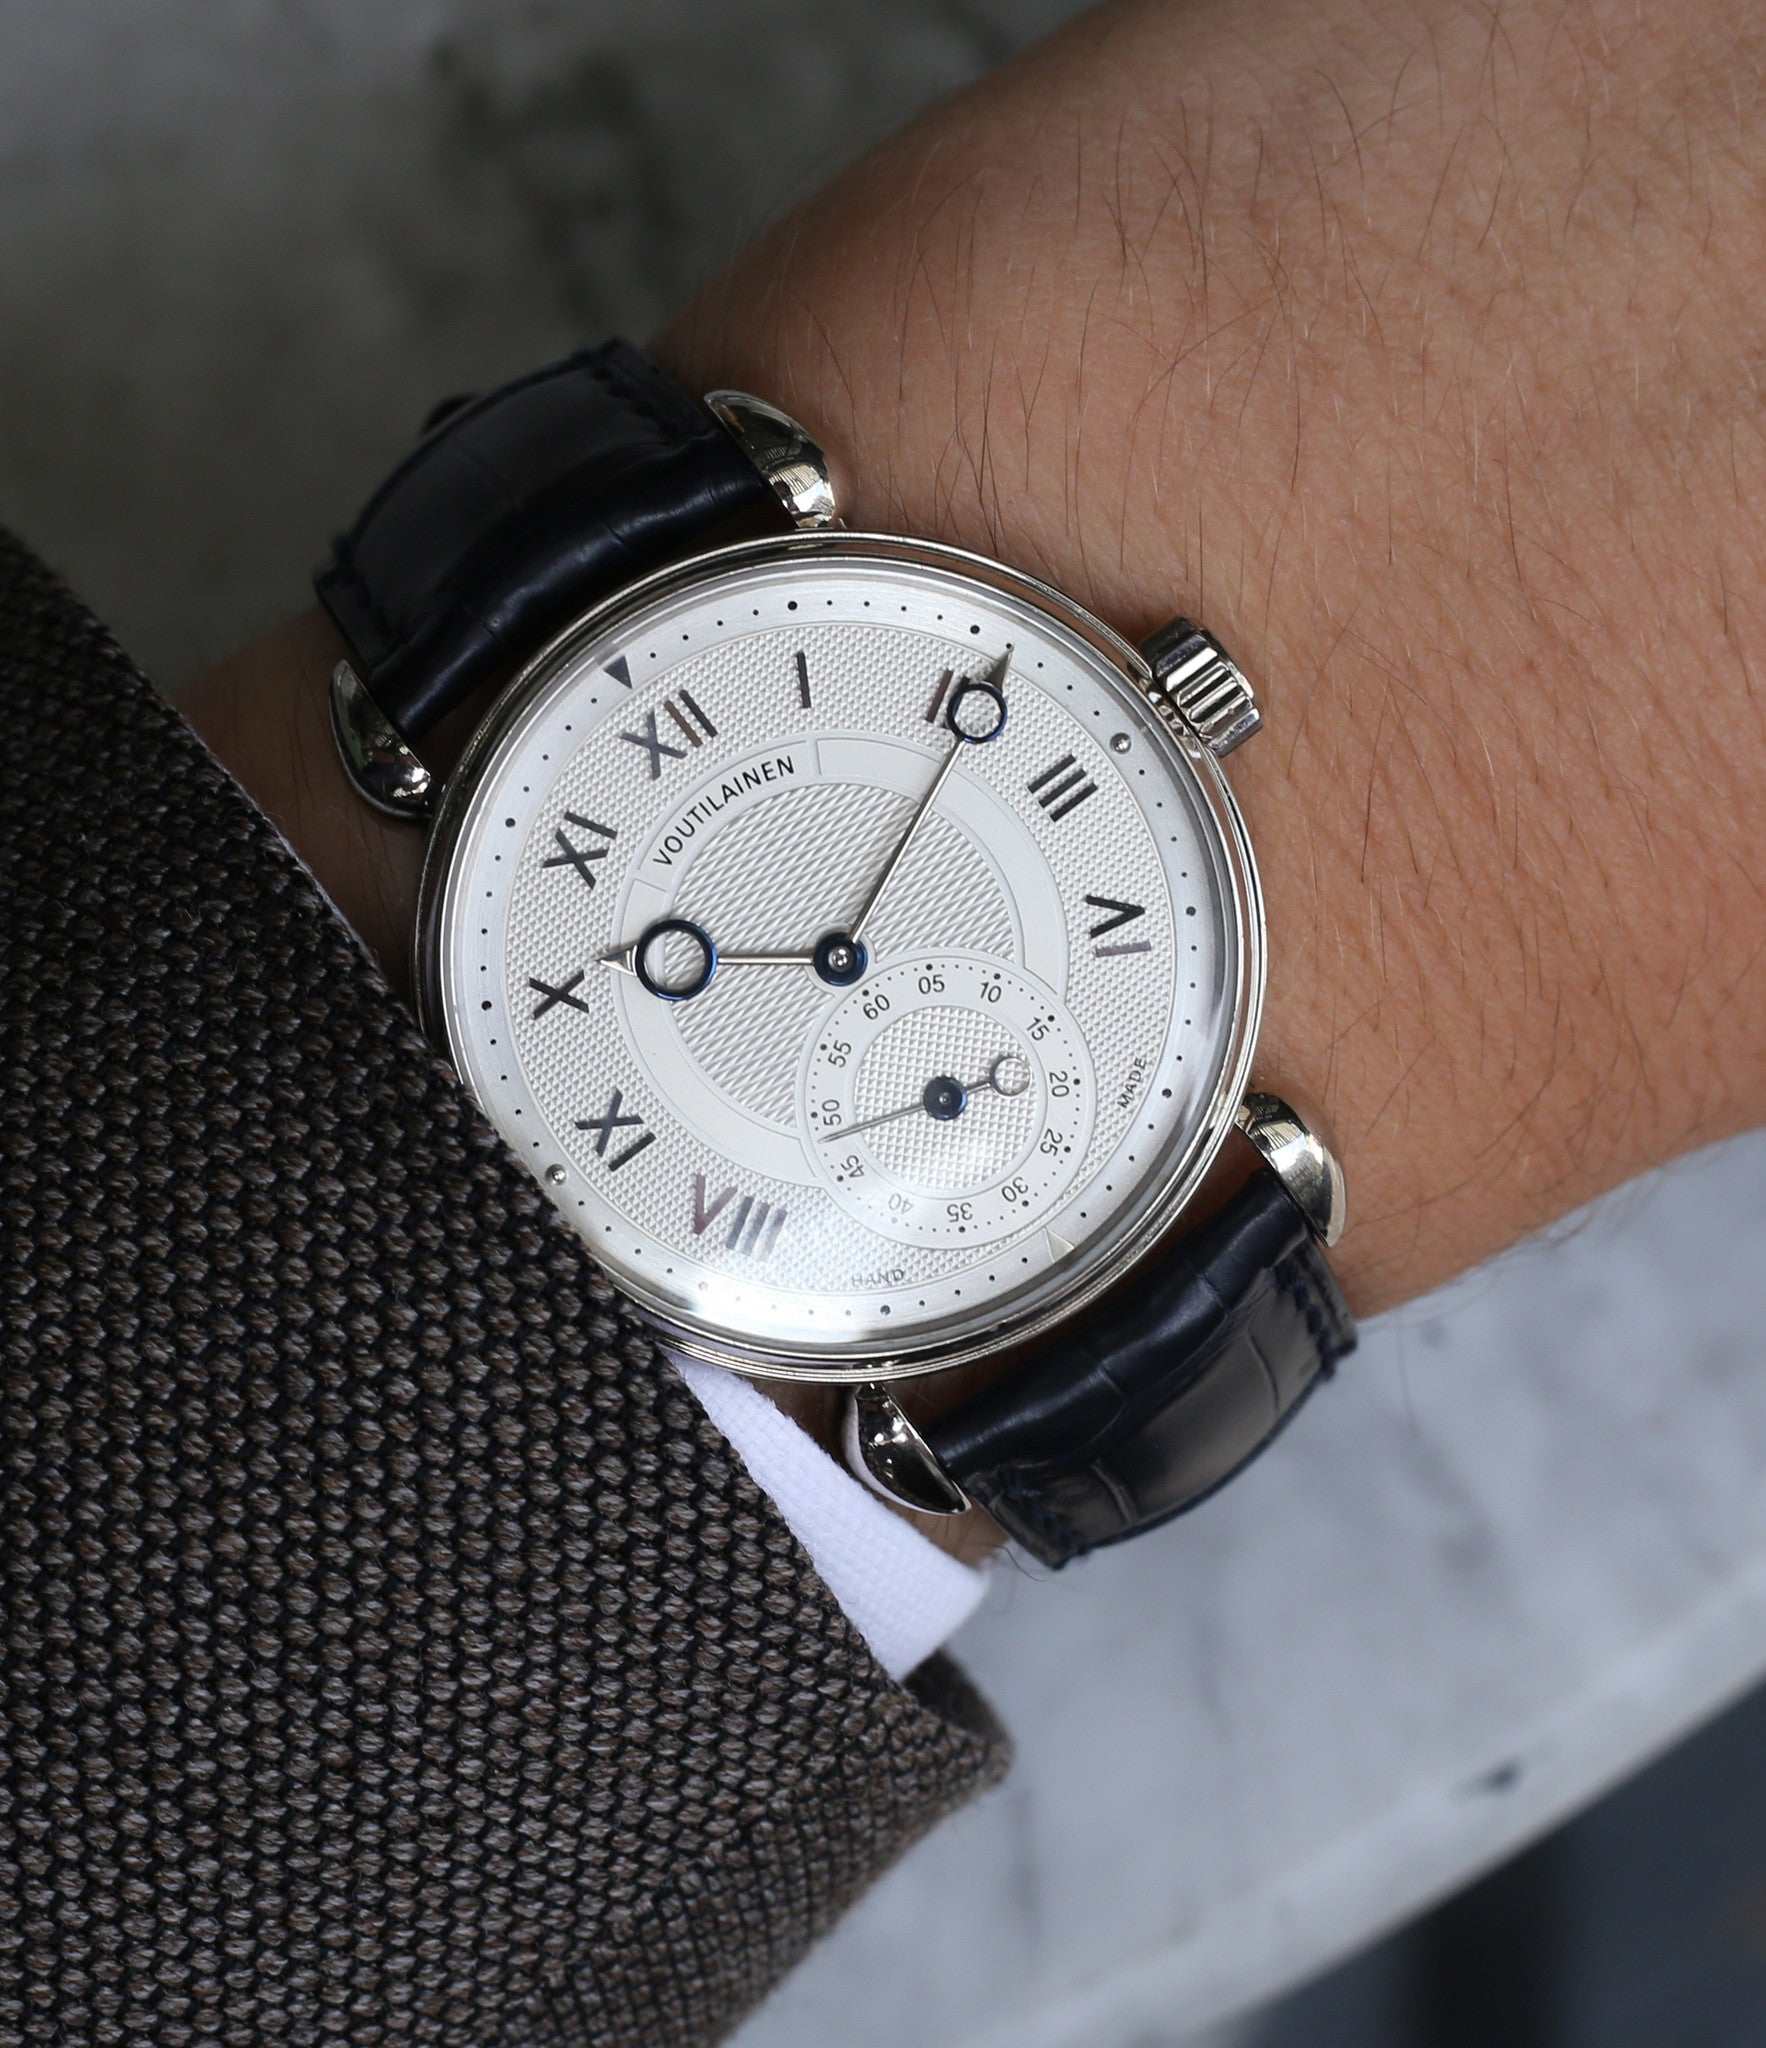 Kari Voutilainen Observatorie rare hand-made time-only white gold watch from independent watchmaker online for sale WATCH XCHANGE London with box and papers and blue hands and guilloche dial